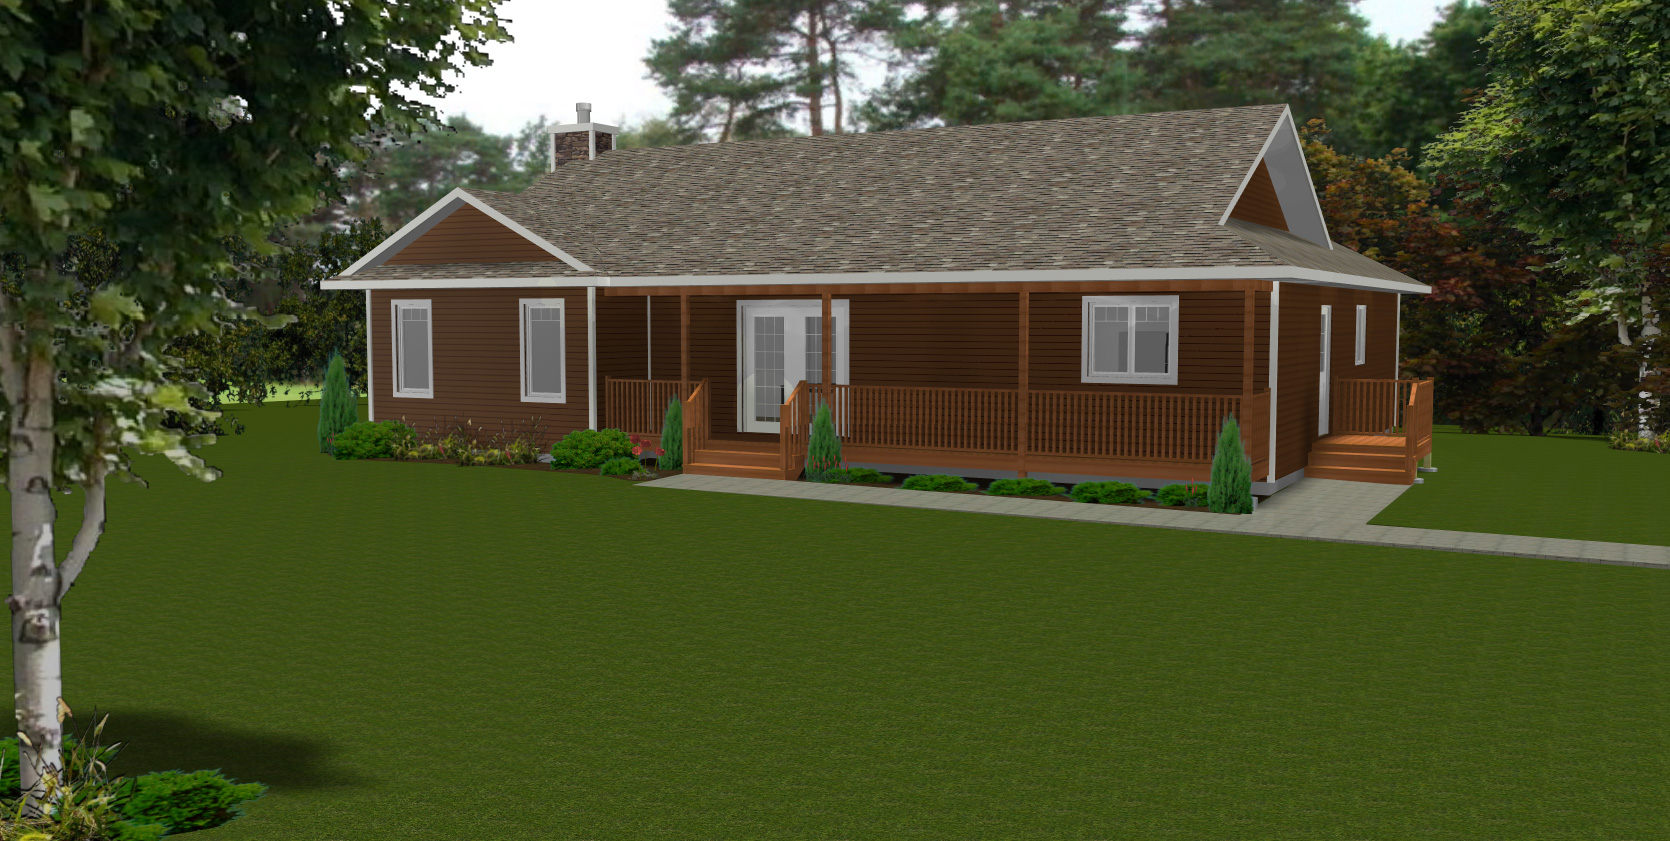 Ranch style bungalow house plan ranch to bungalow for Ranch bungalow house plans